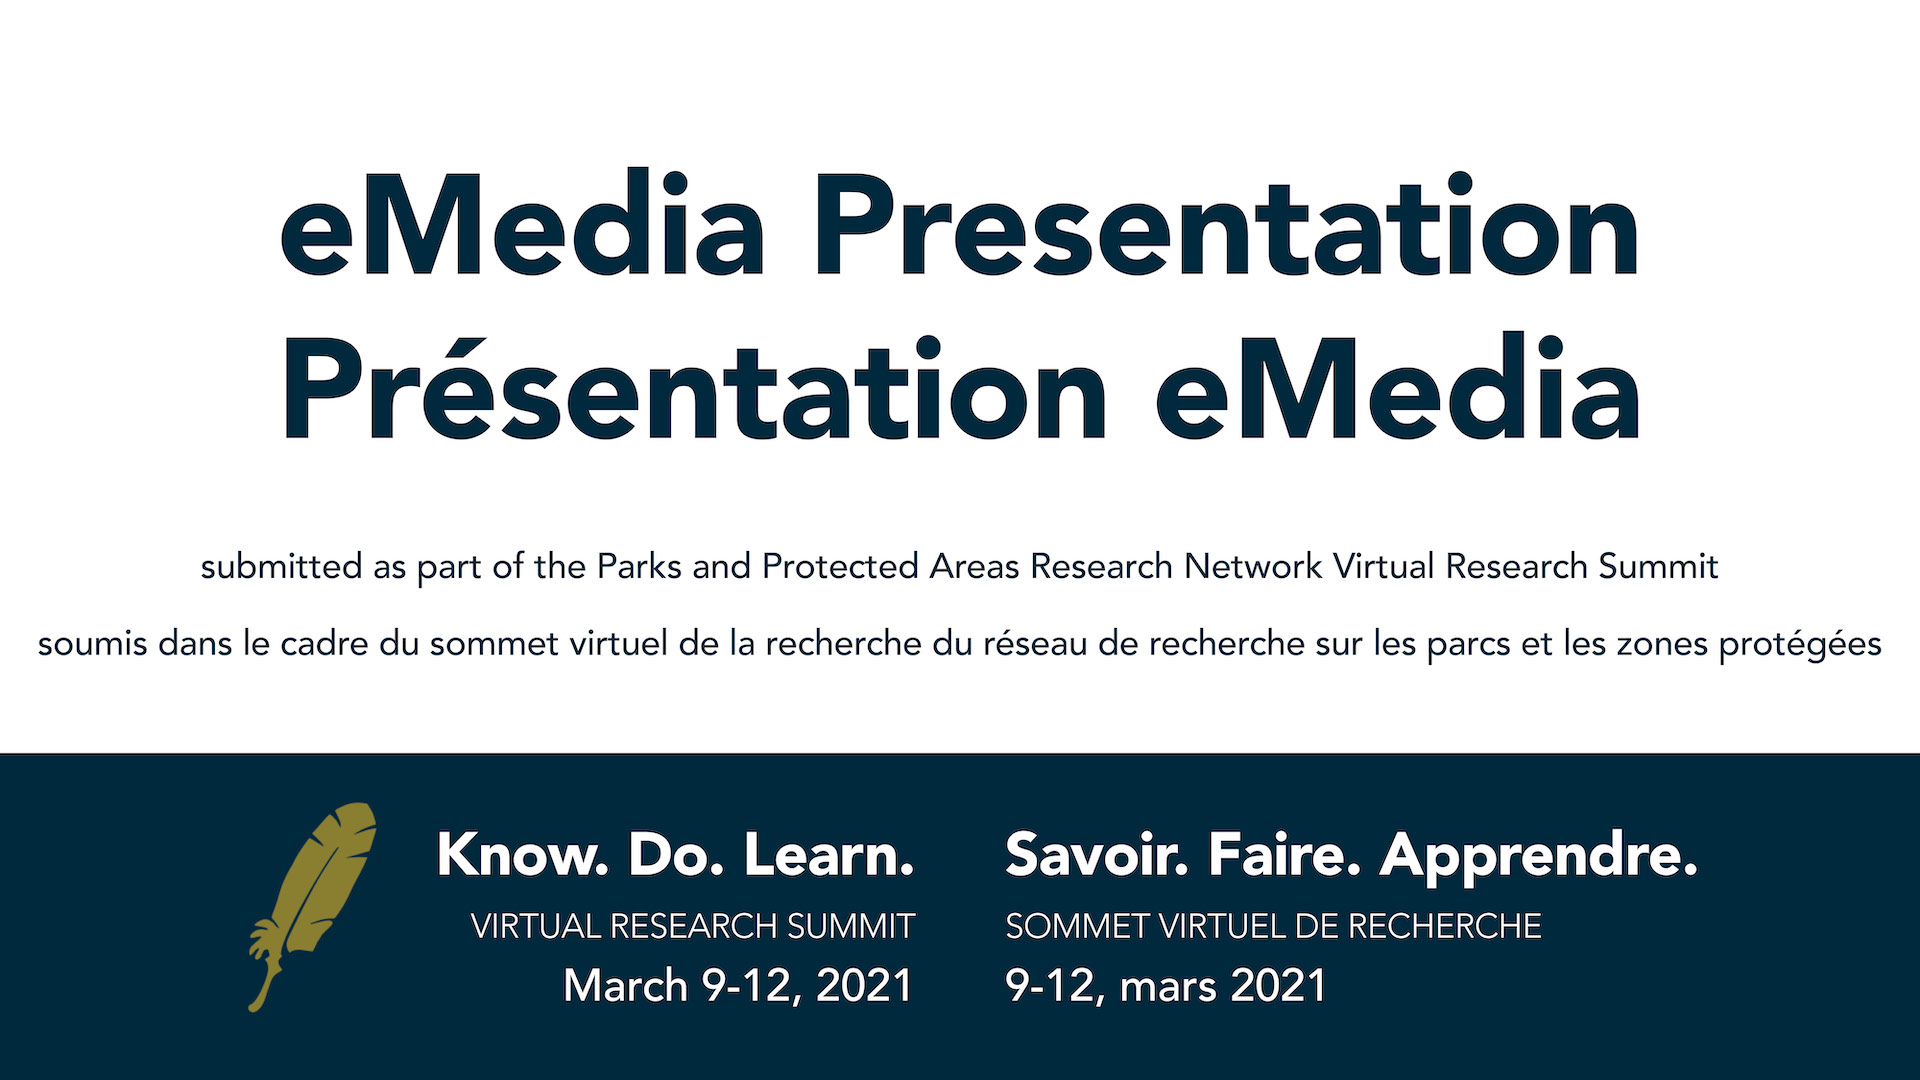 eMedia presentation for CPCIL Virtual Research Summit